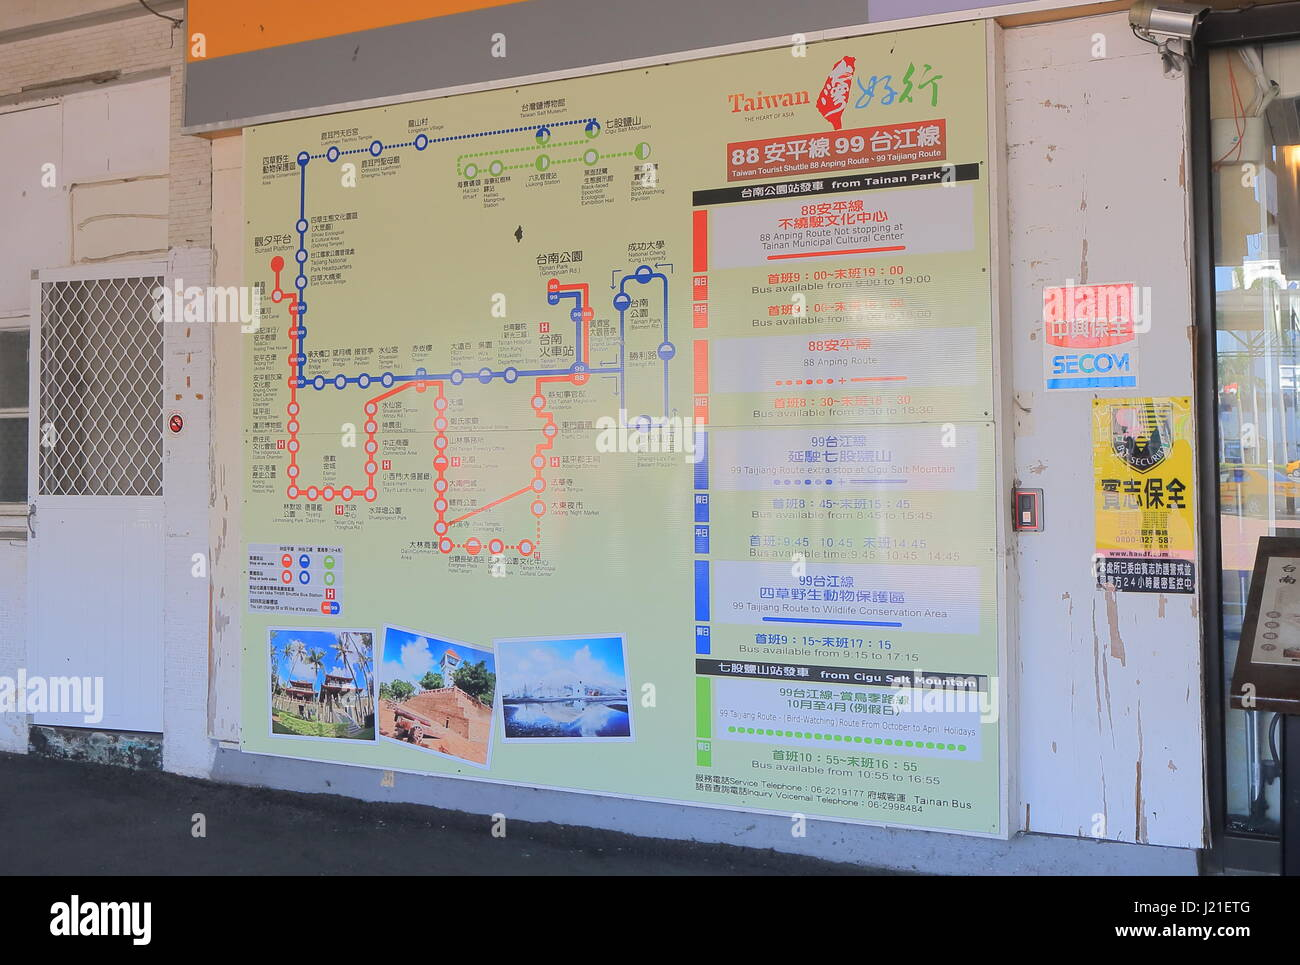 Tourist bus map at Tourist information office Tainan train station